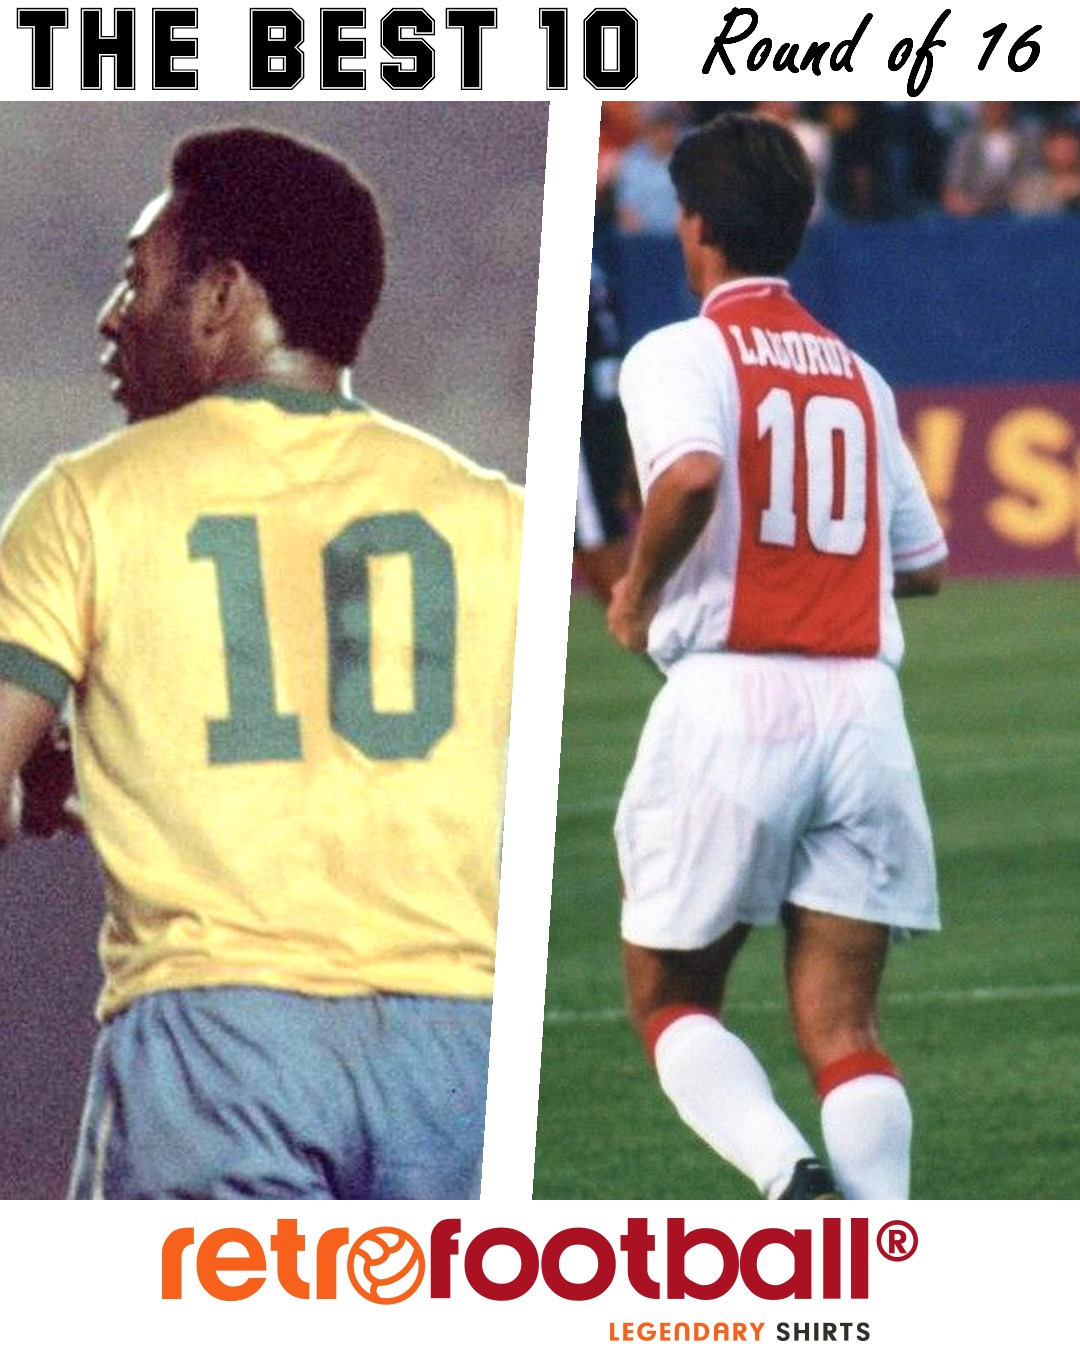 The best 10 - Laudrup vs. Pele